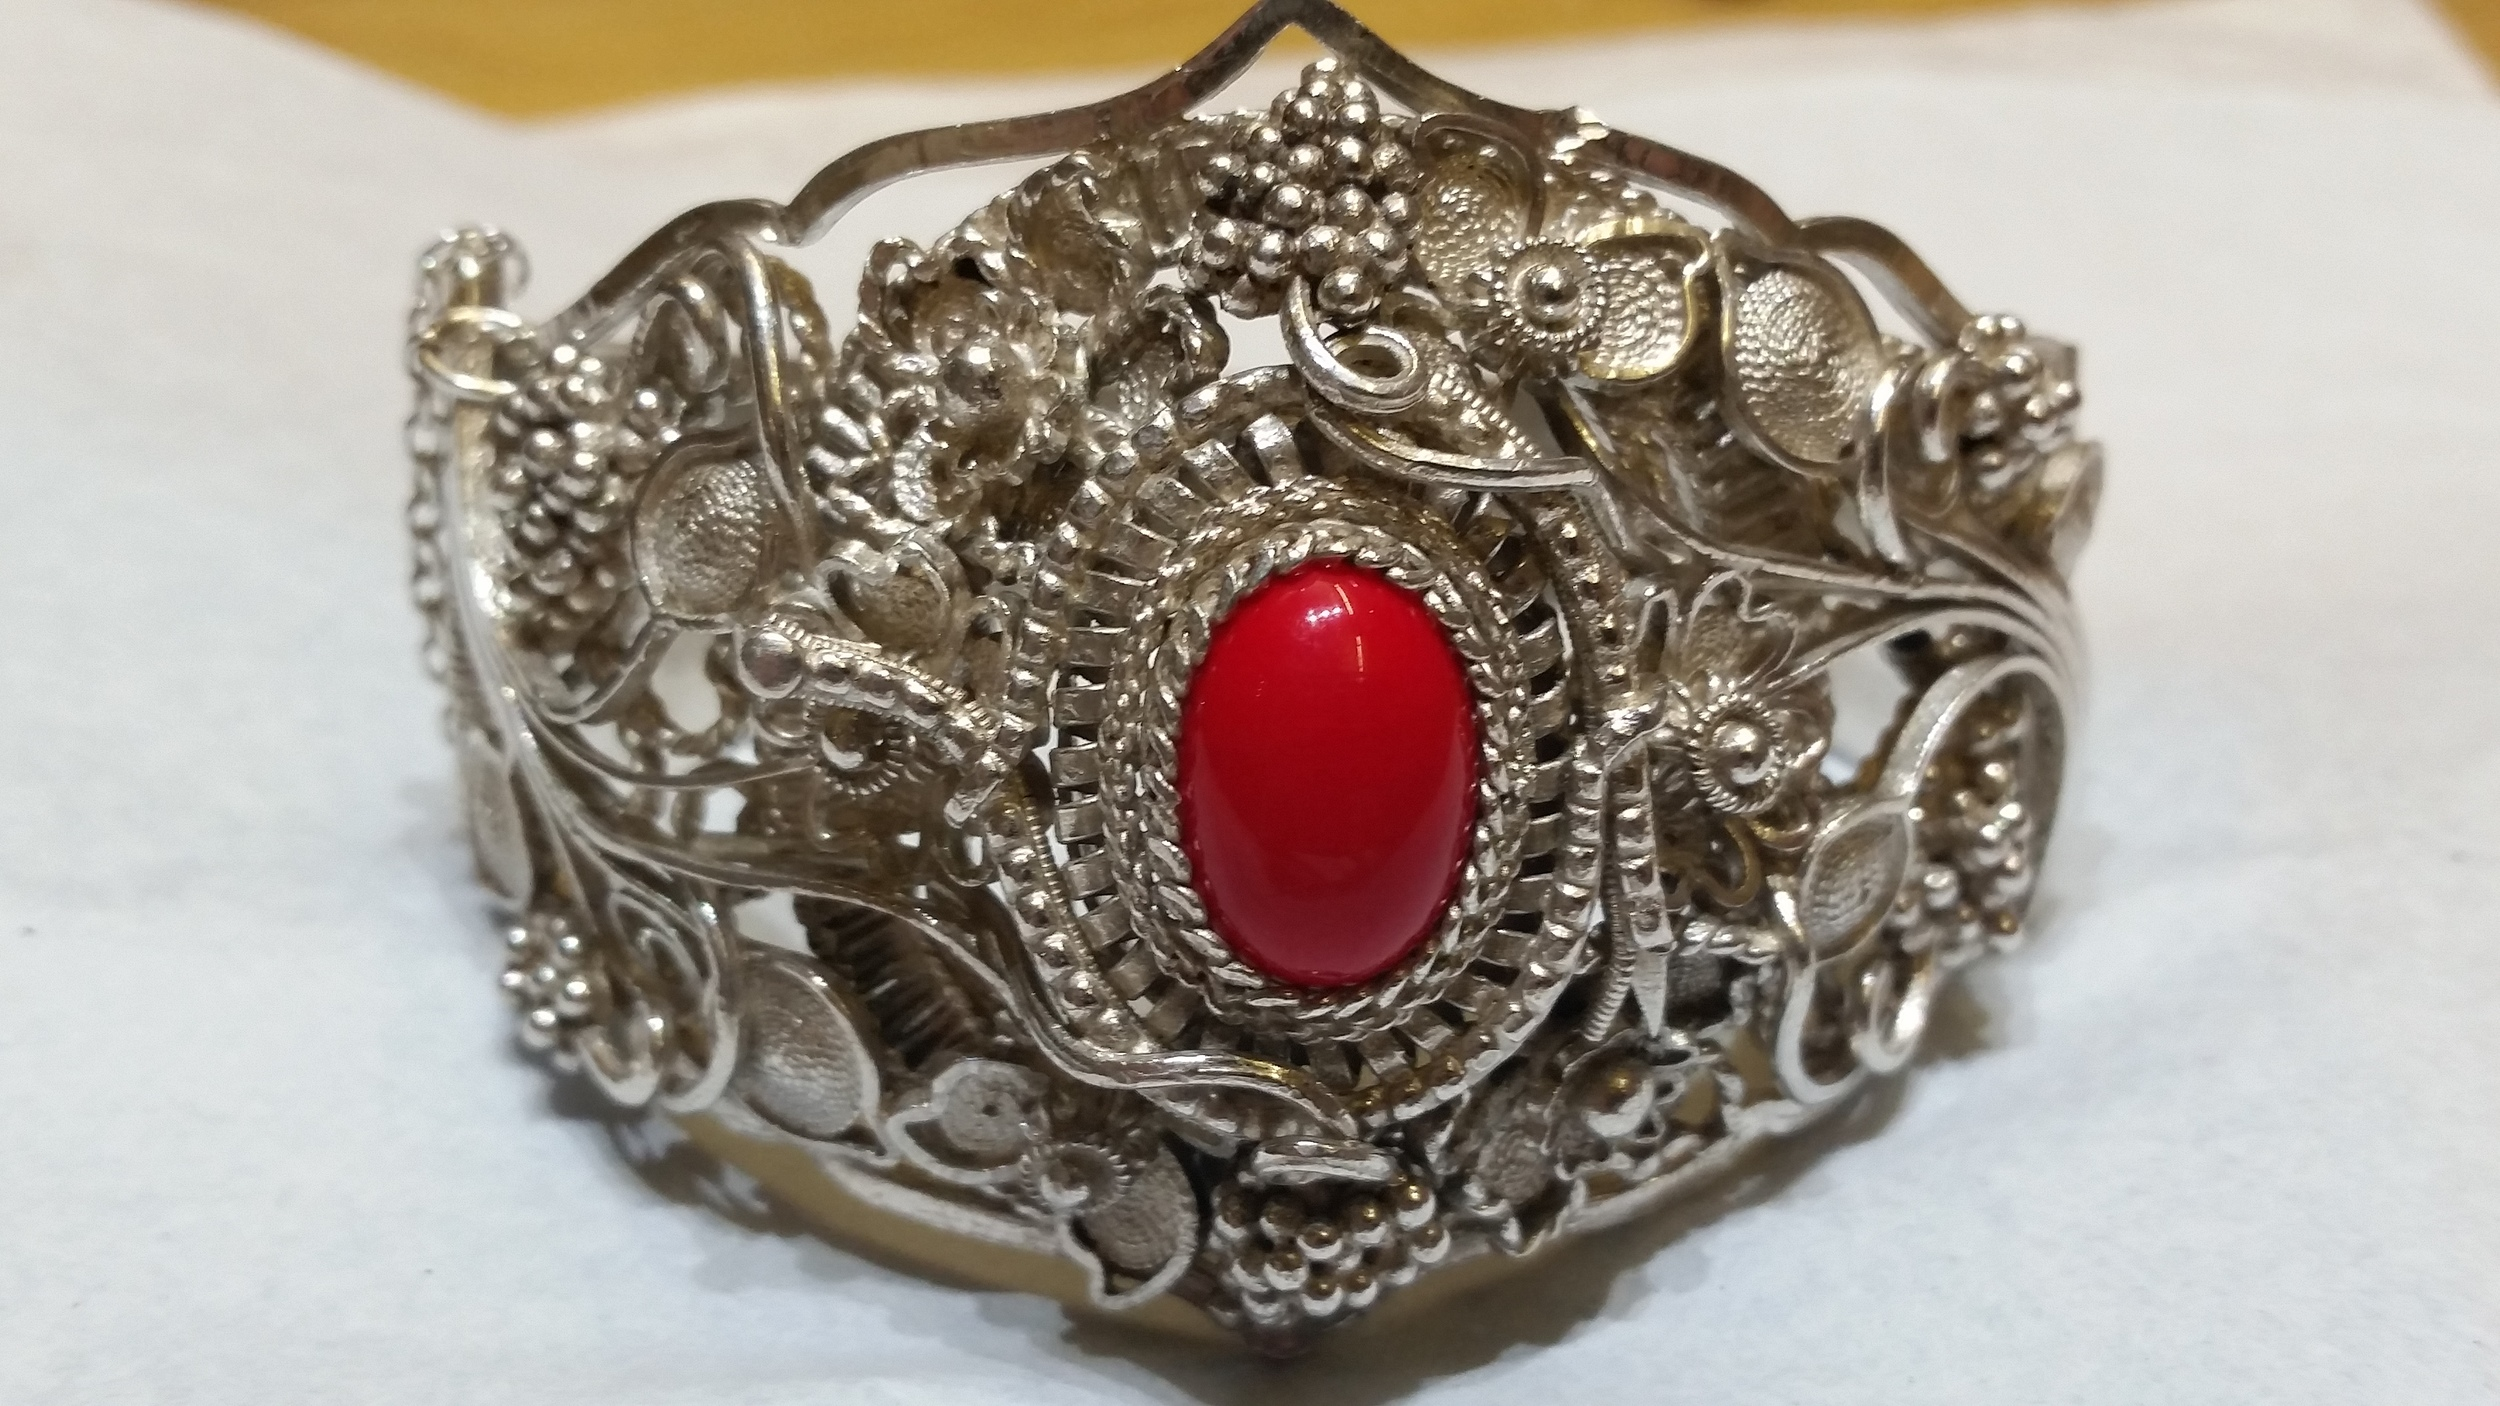 Handmade in Yugoslavia this bracelet features local flower and grapes carved into and coming off the silver bangle bracelet. The center stone is a Carnelian or a red onyx. This unique estate piece is a work of art.    $400